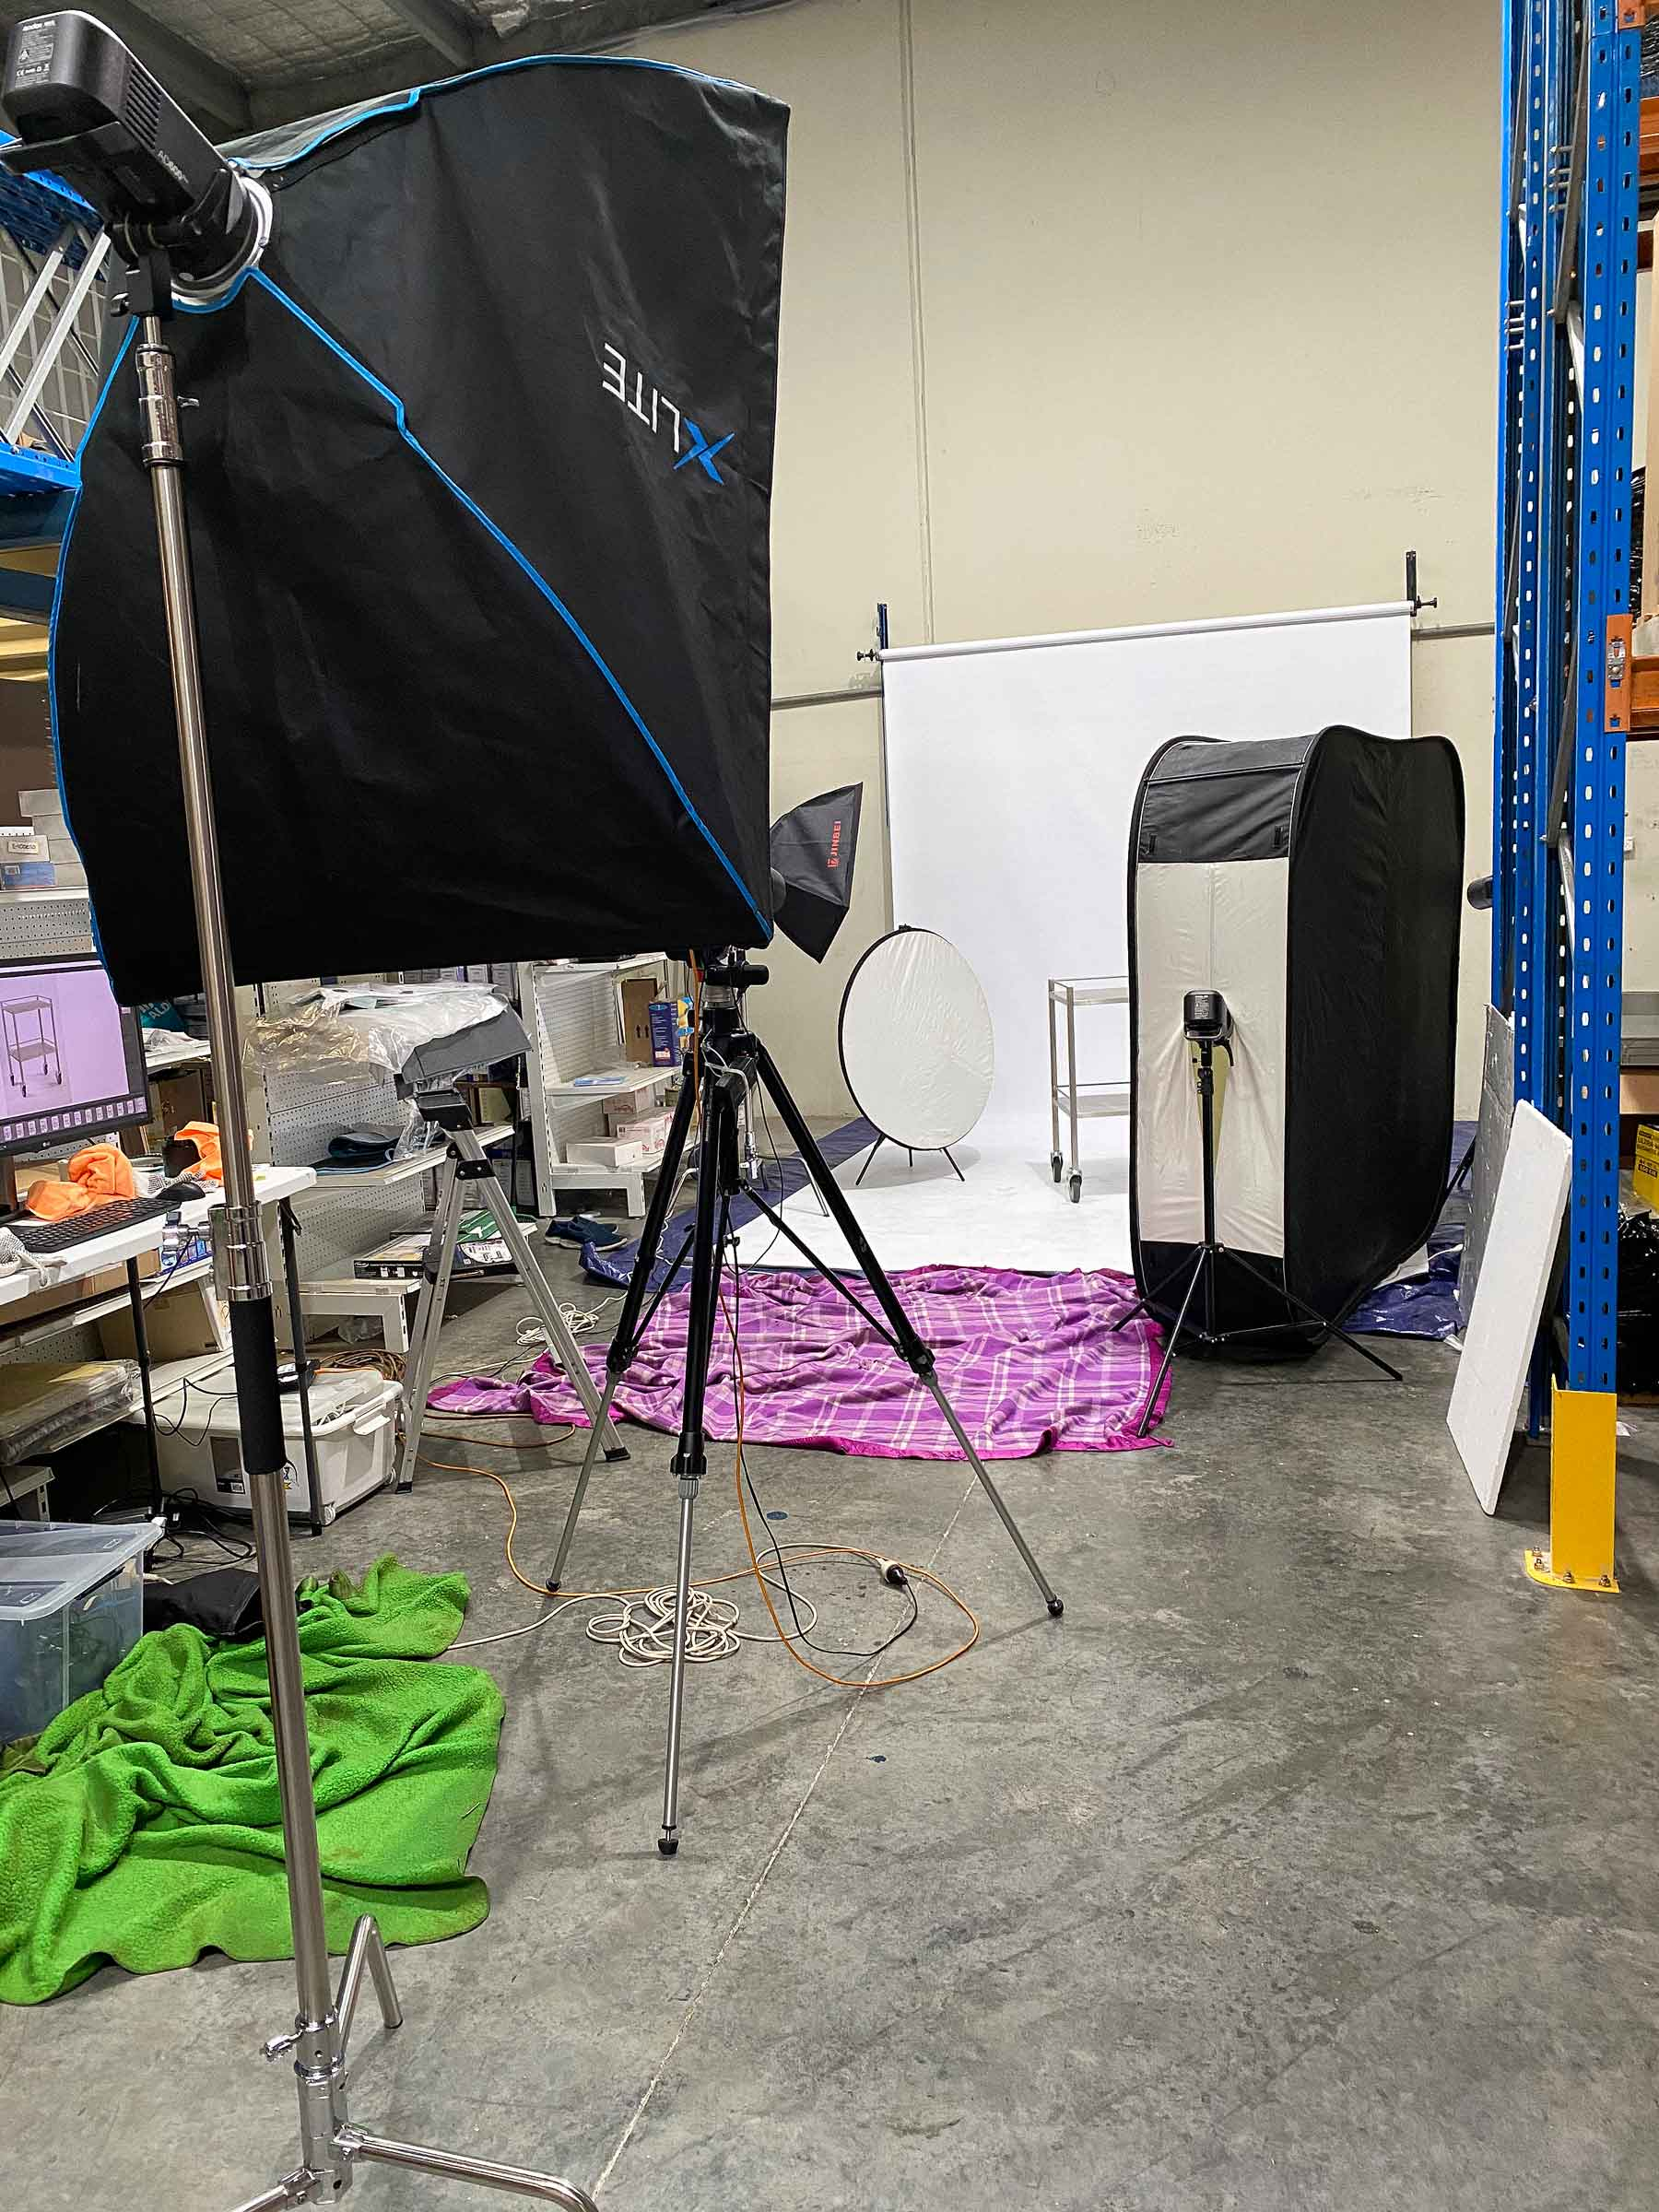 Warehouse client photo shoot showing extra large reflectors